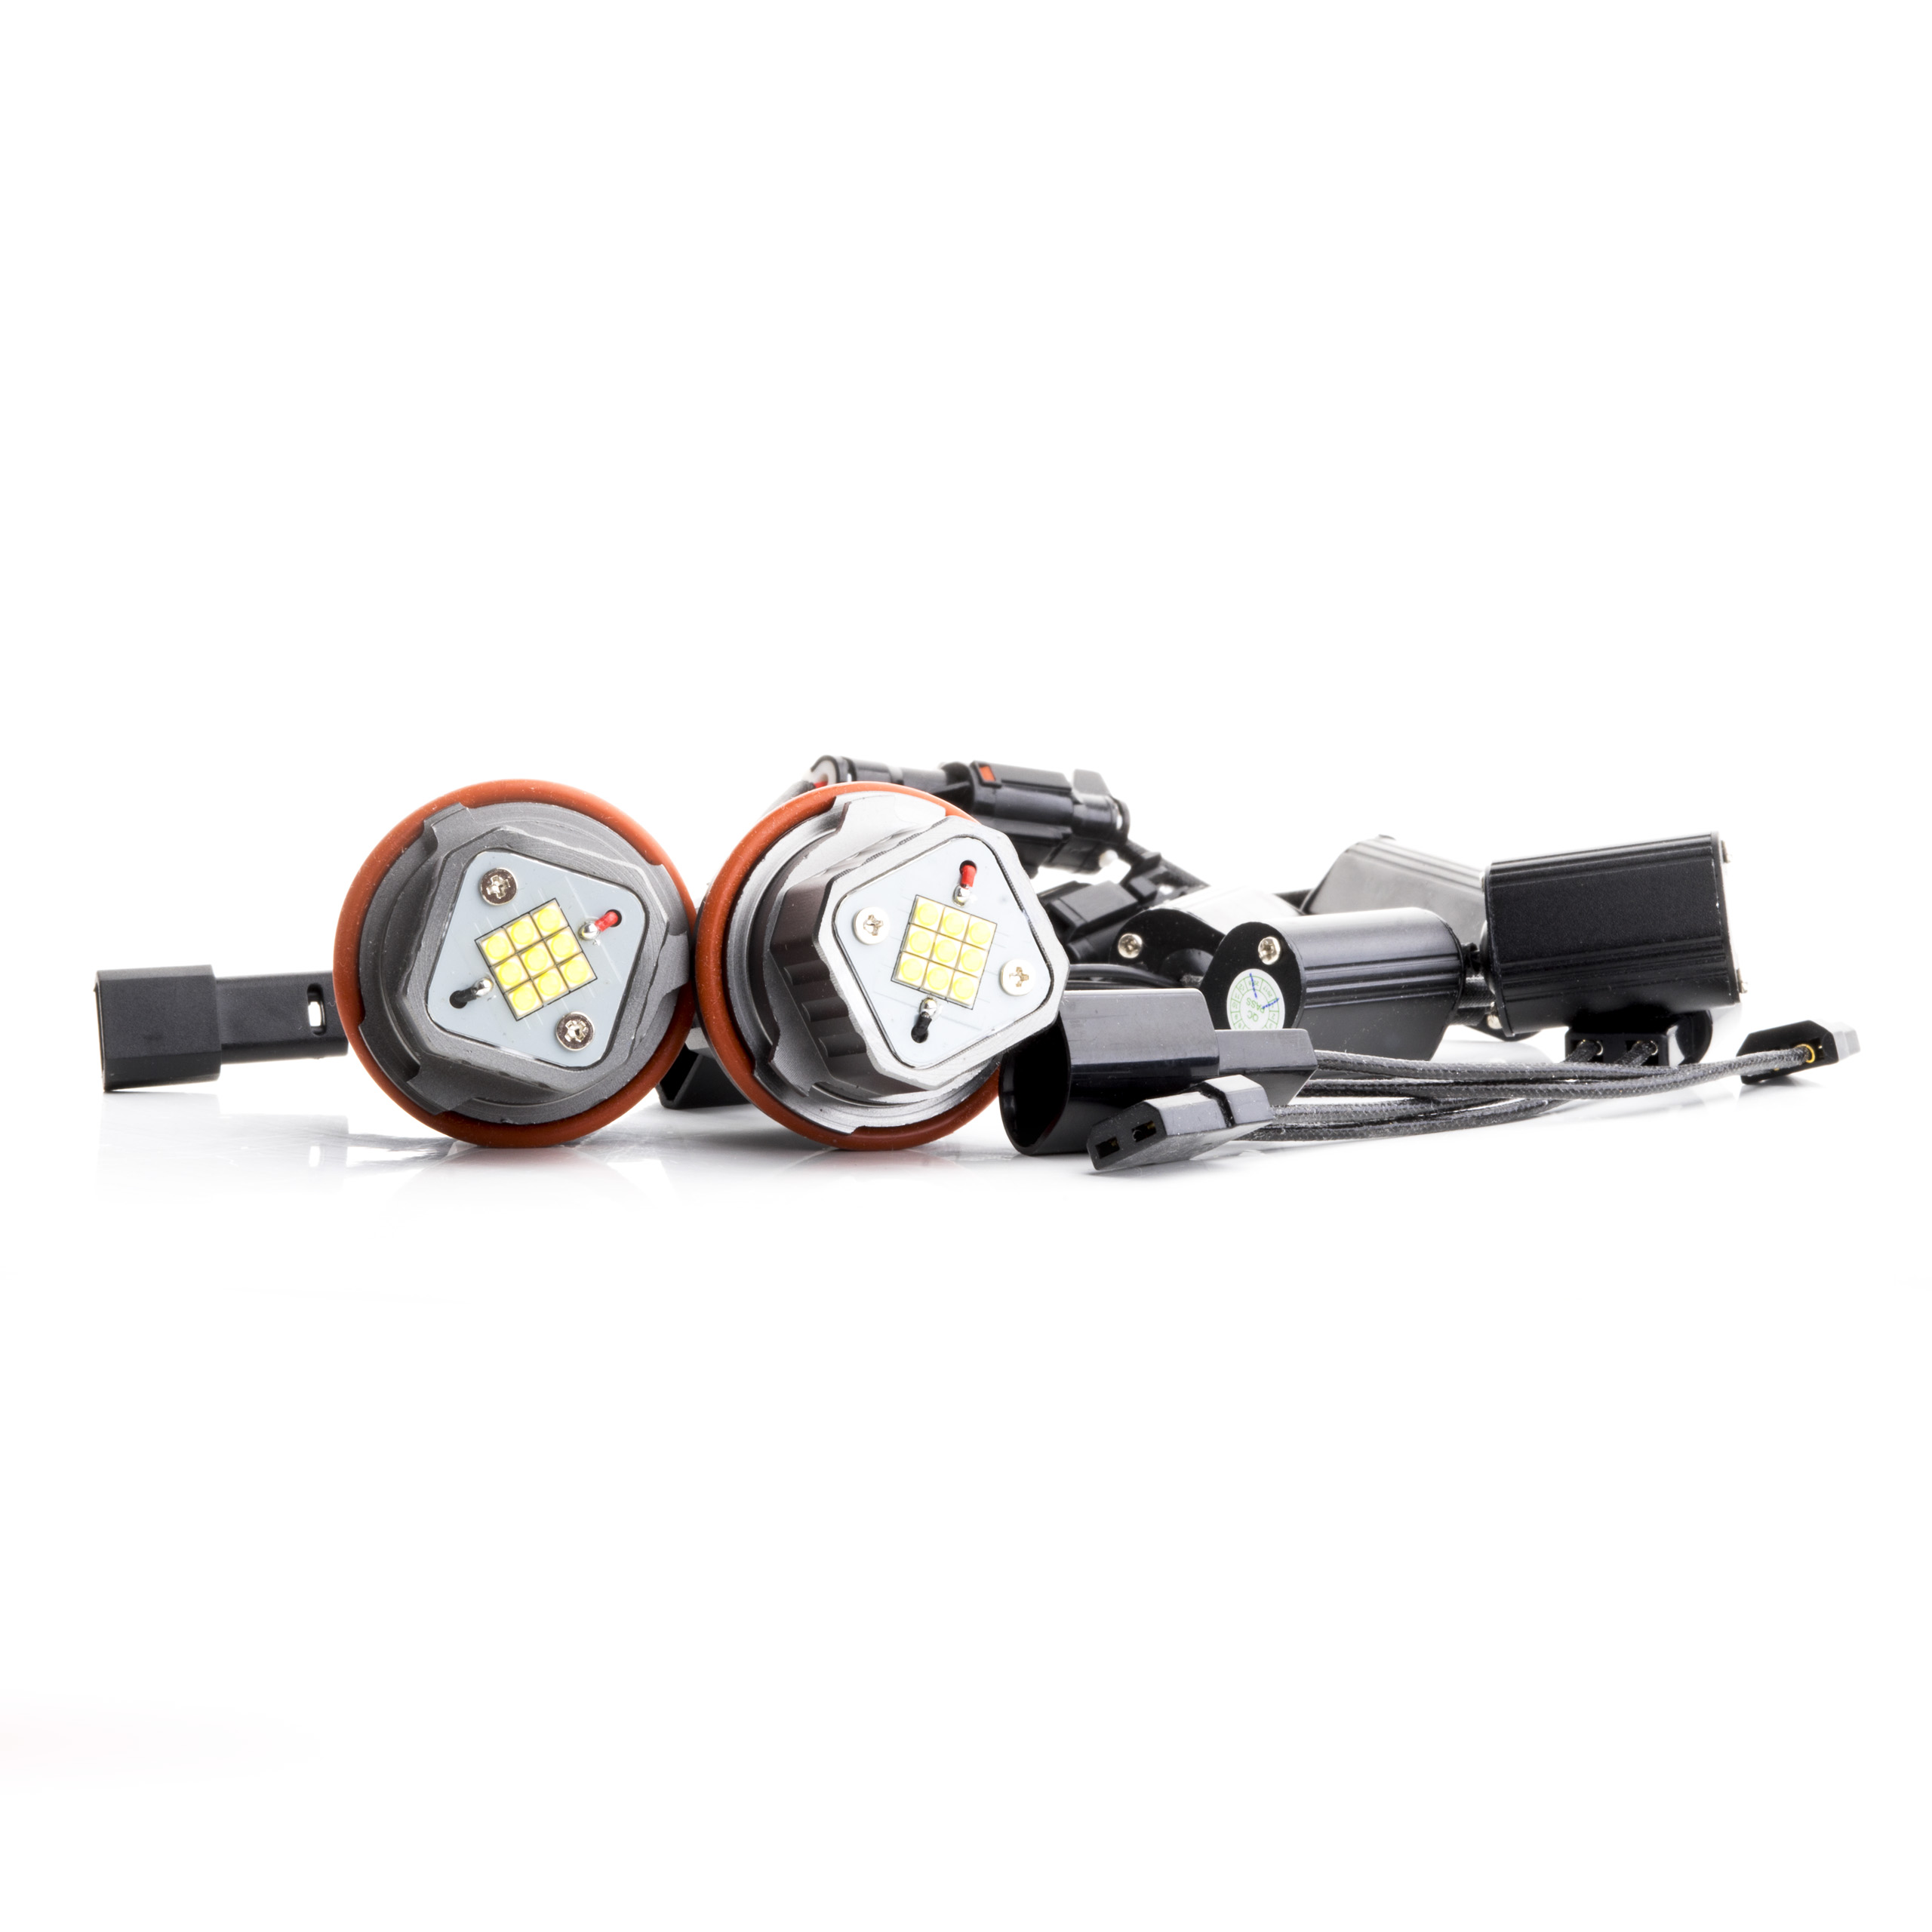 LED Markery 2 x 80W (OSRAM) do kroužků BMW X5 E53 (2002-2007)